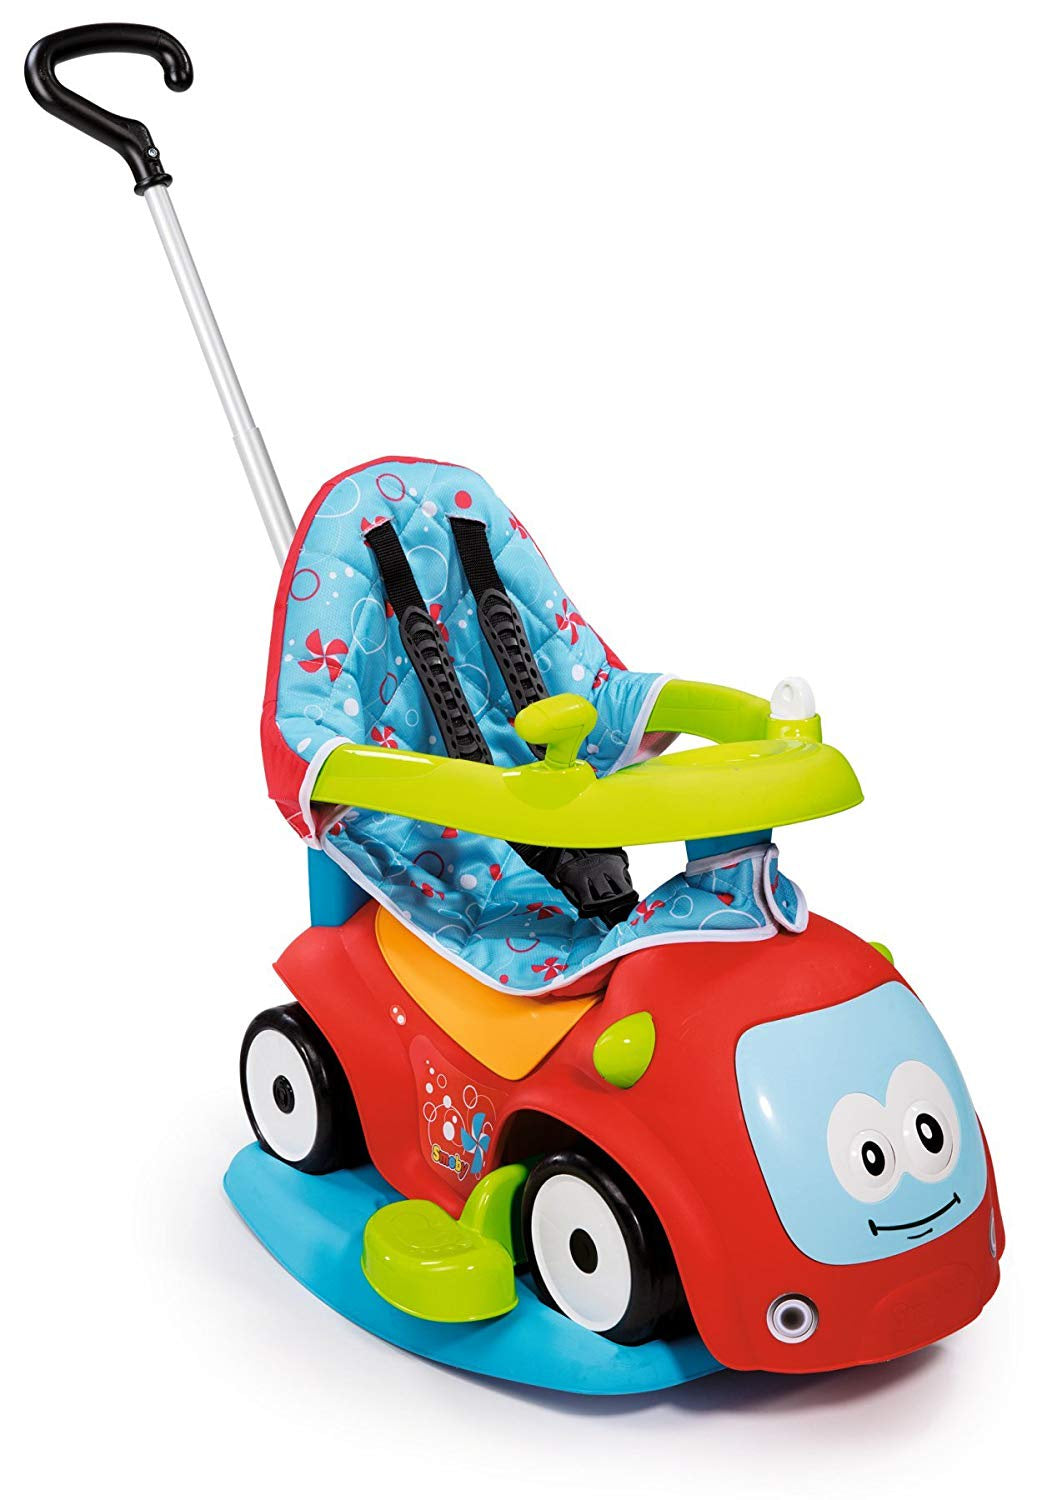 Smoby Maestro Comfort Balade Ride On